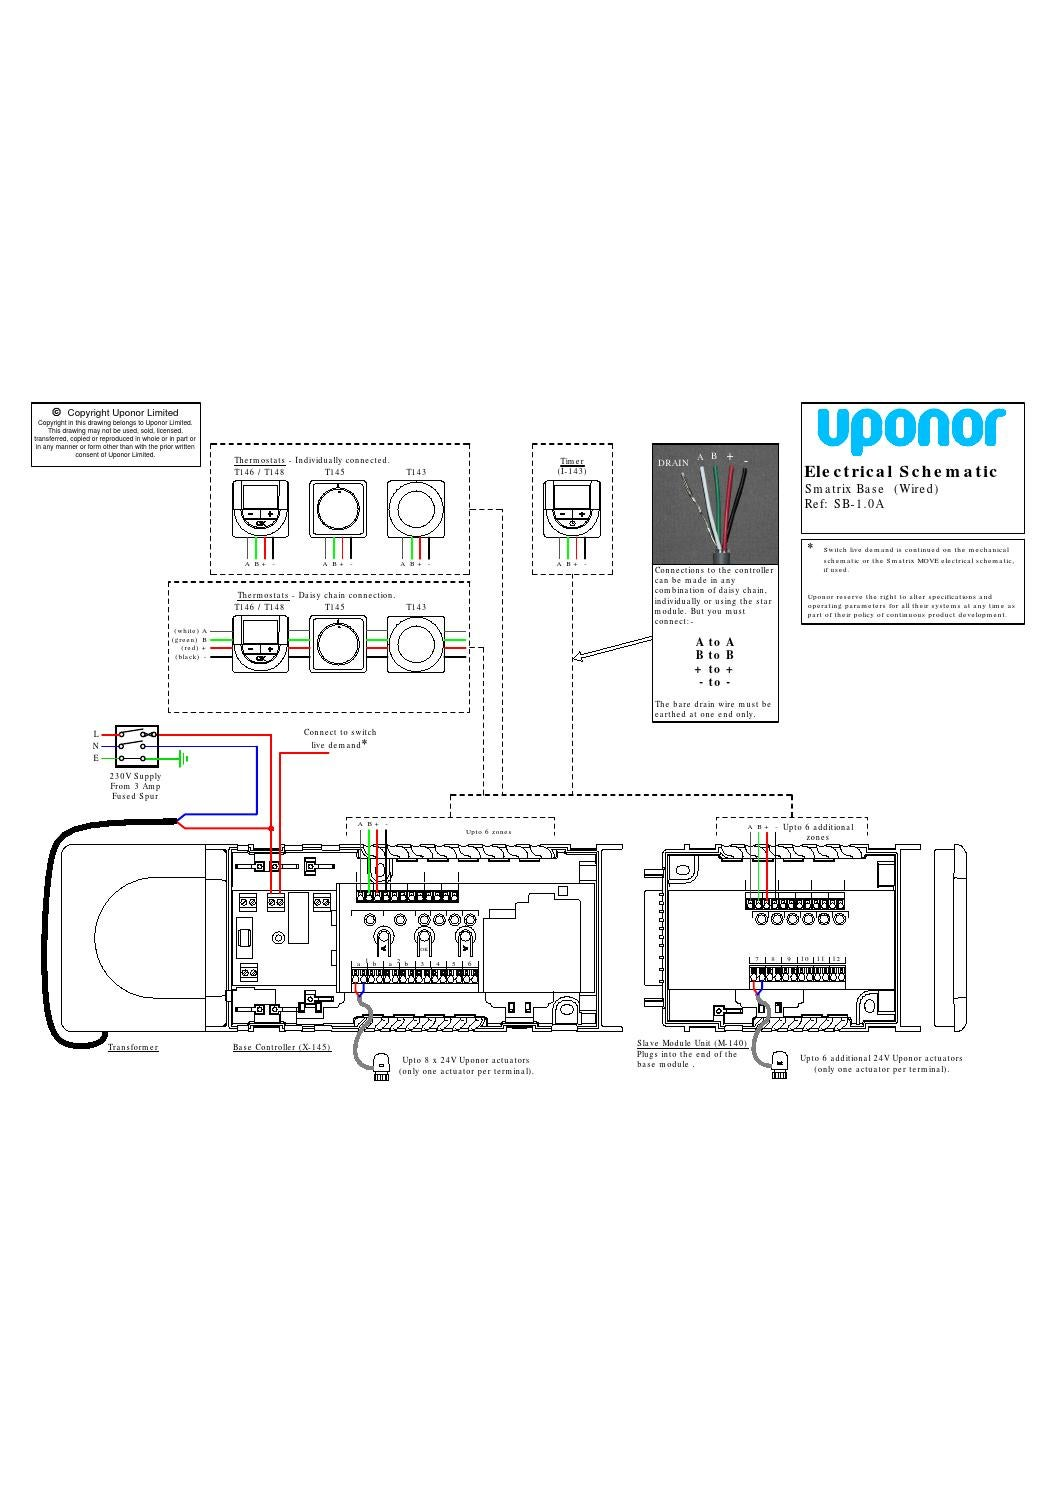 474414 Correct Hookup Trane Xv95 Xl16i 4 Ton together with Trane Xr 90 Furnace Condensate Wiring Diagrams as well Appliance furthermore Lennox Wiring Diagram as well AC  pressor Repairs. on trane heat pump installation manual